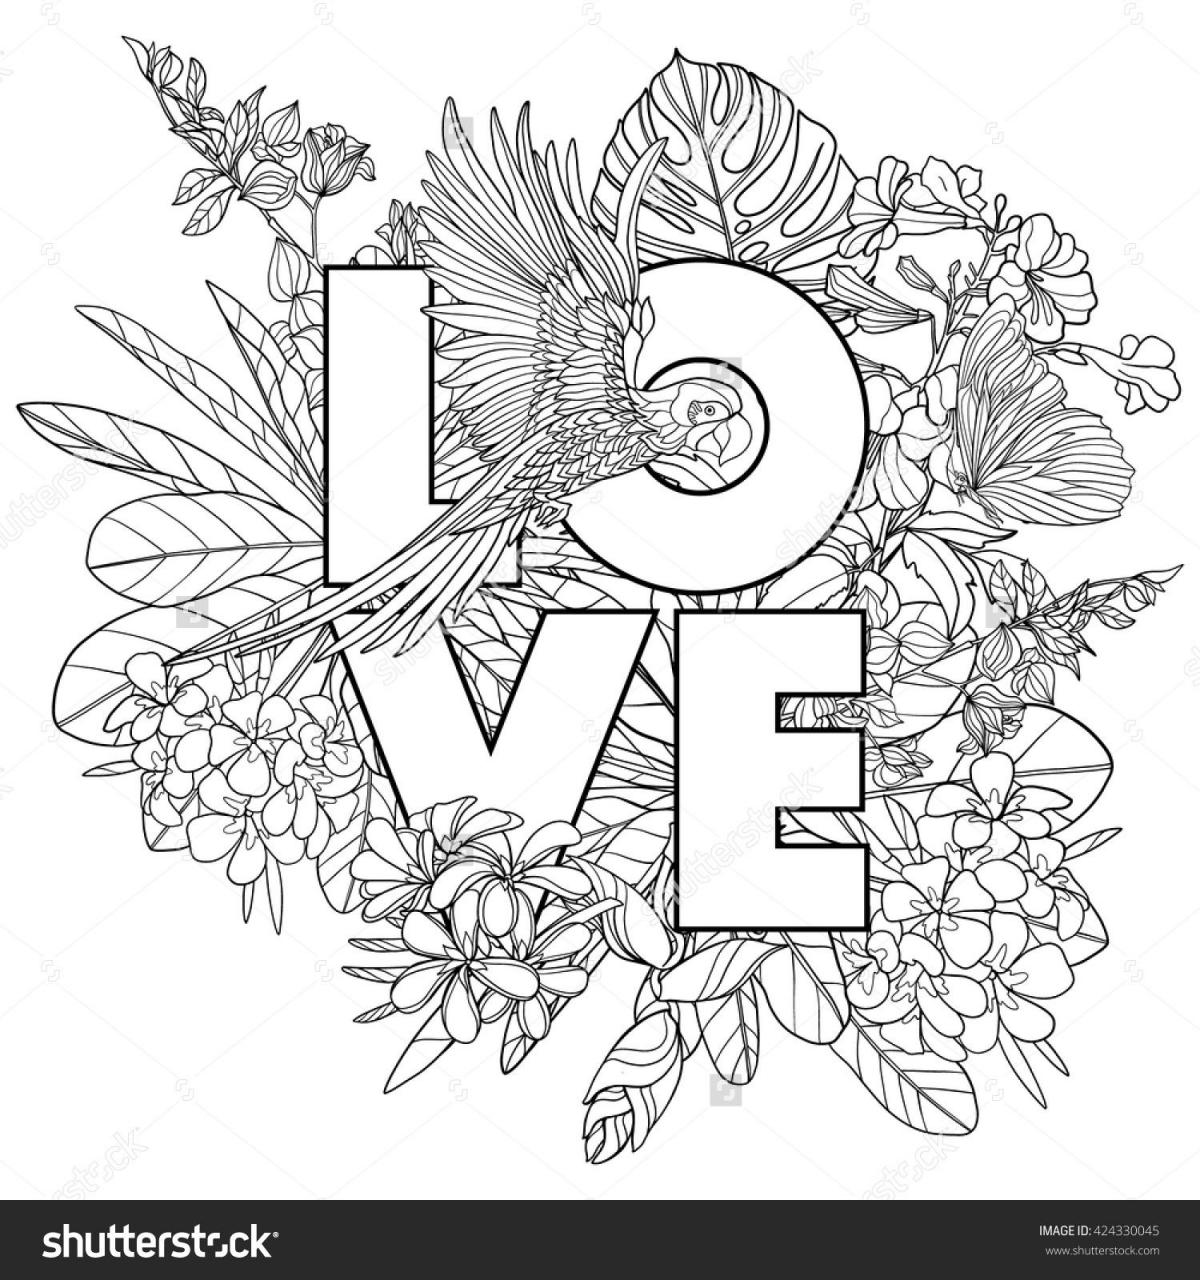 Coloring Page With Word Love And Tropical Birds And Plants Outline Vector Il Ration Buy This Stock Vector On Shutterstock Find Other Images